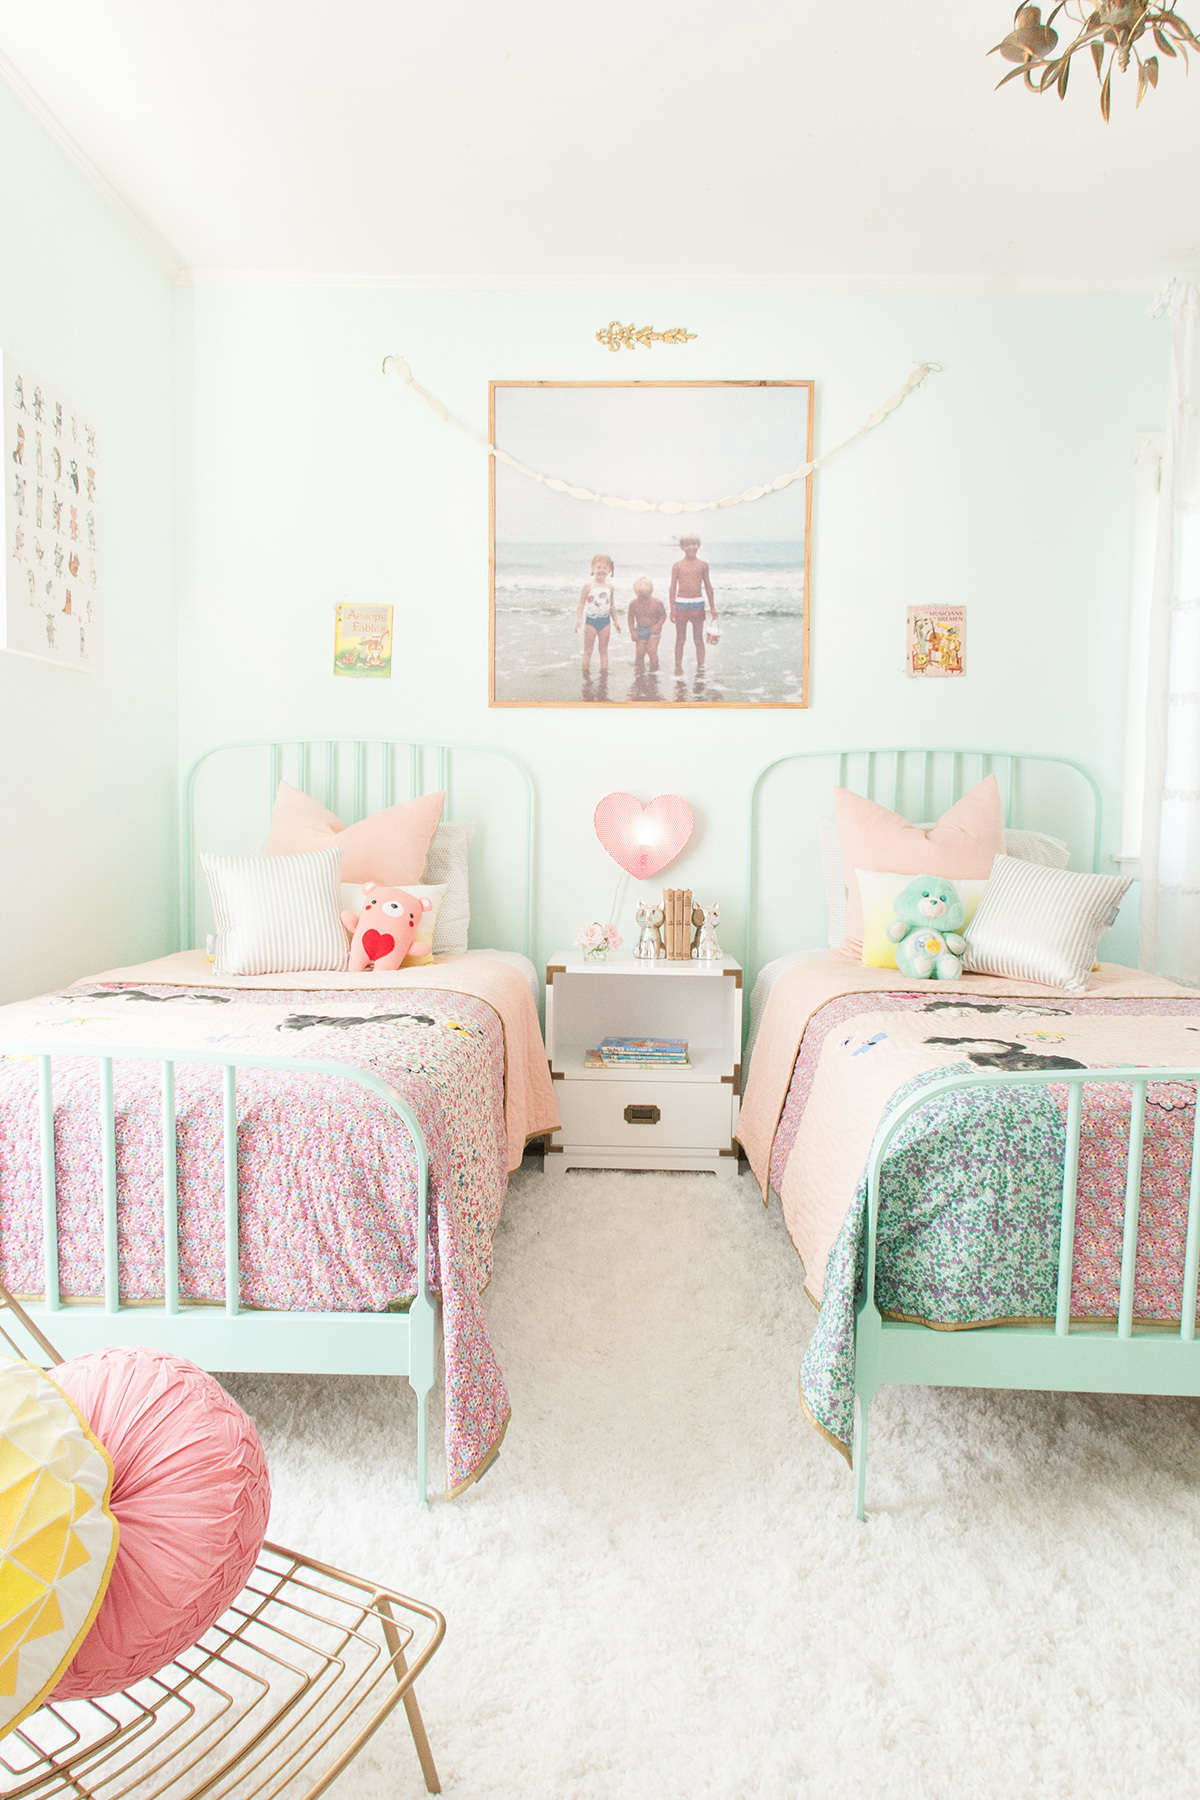 10 Pretty Pastel Girls Rooms - Tinyme Blog on Girls Bedroom Ideas  id=14055